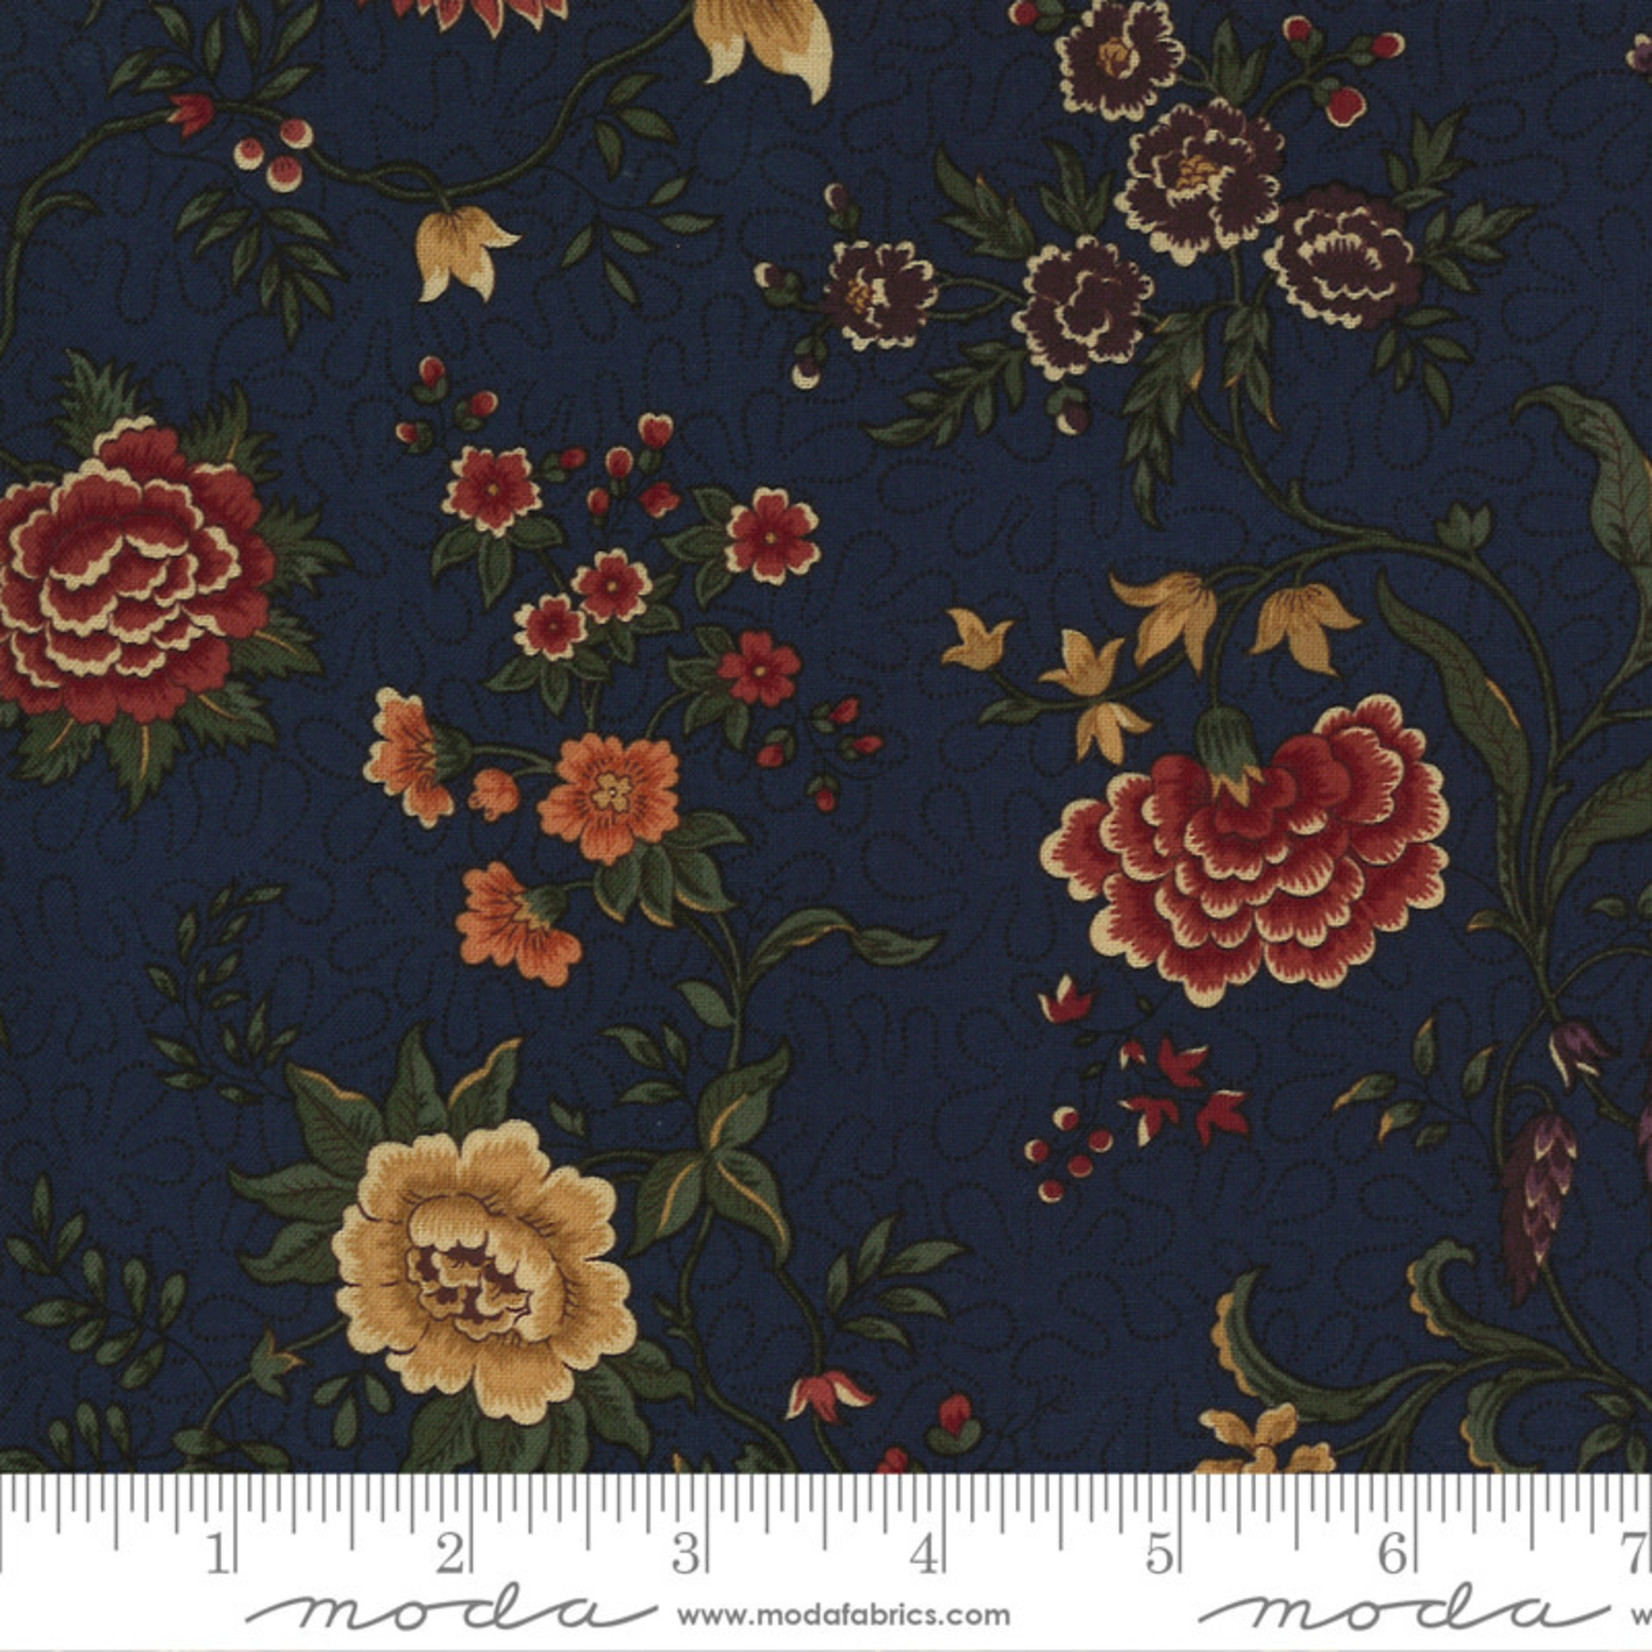 Kansas Troubles Quilters Prairie Dreams, Prairie Flowers Florals, Navy 9650 14 $0.20 per cm or $20/m